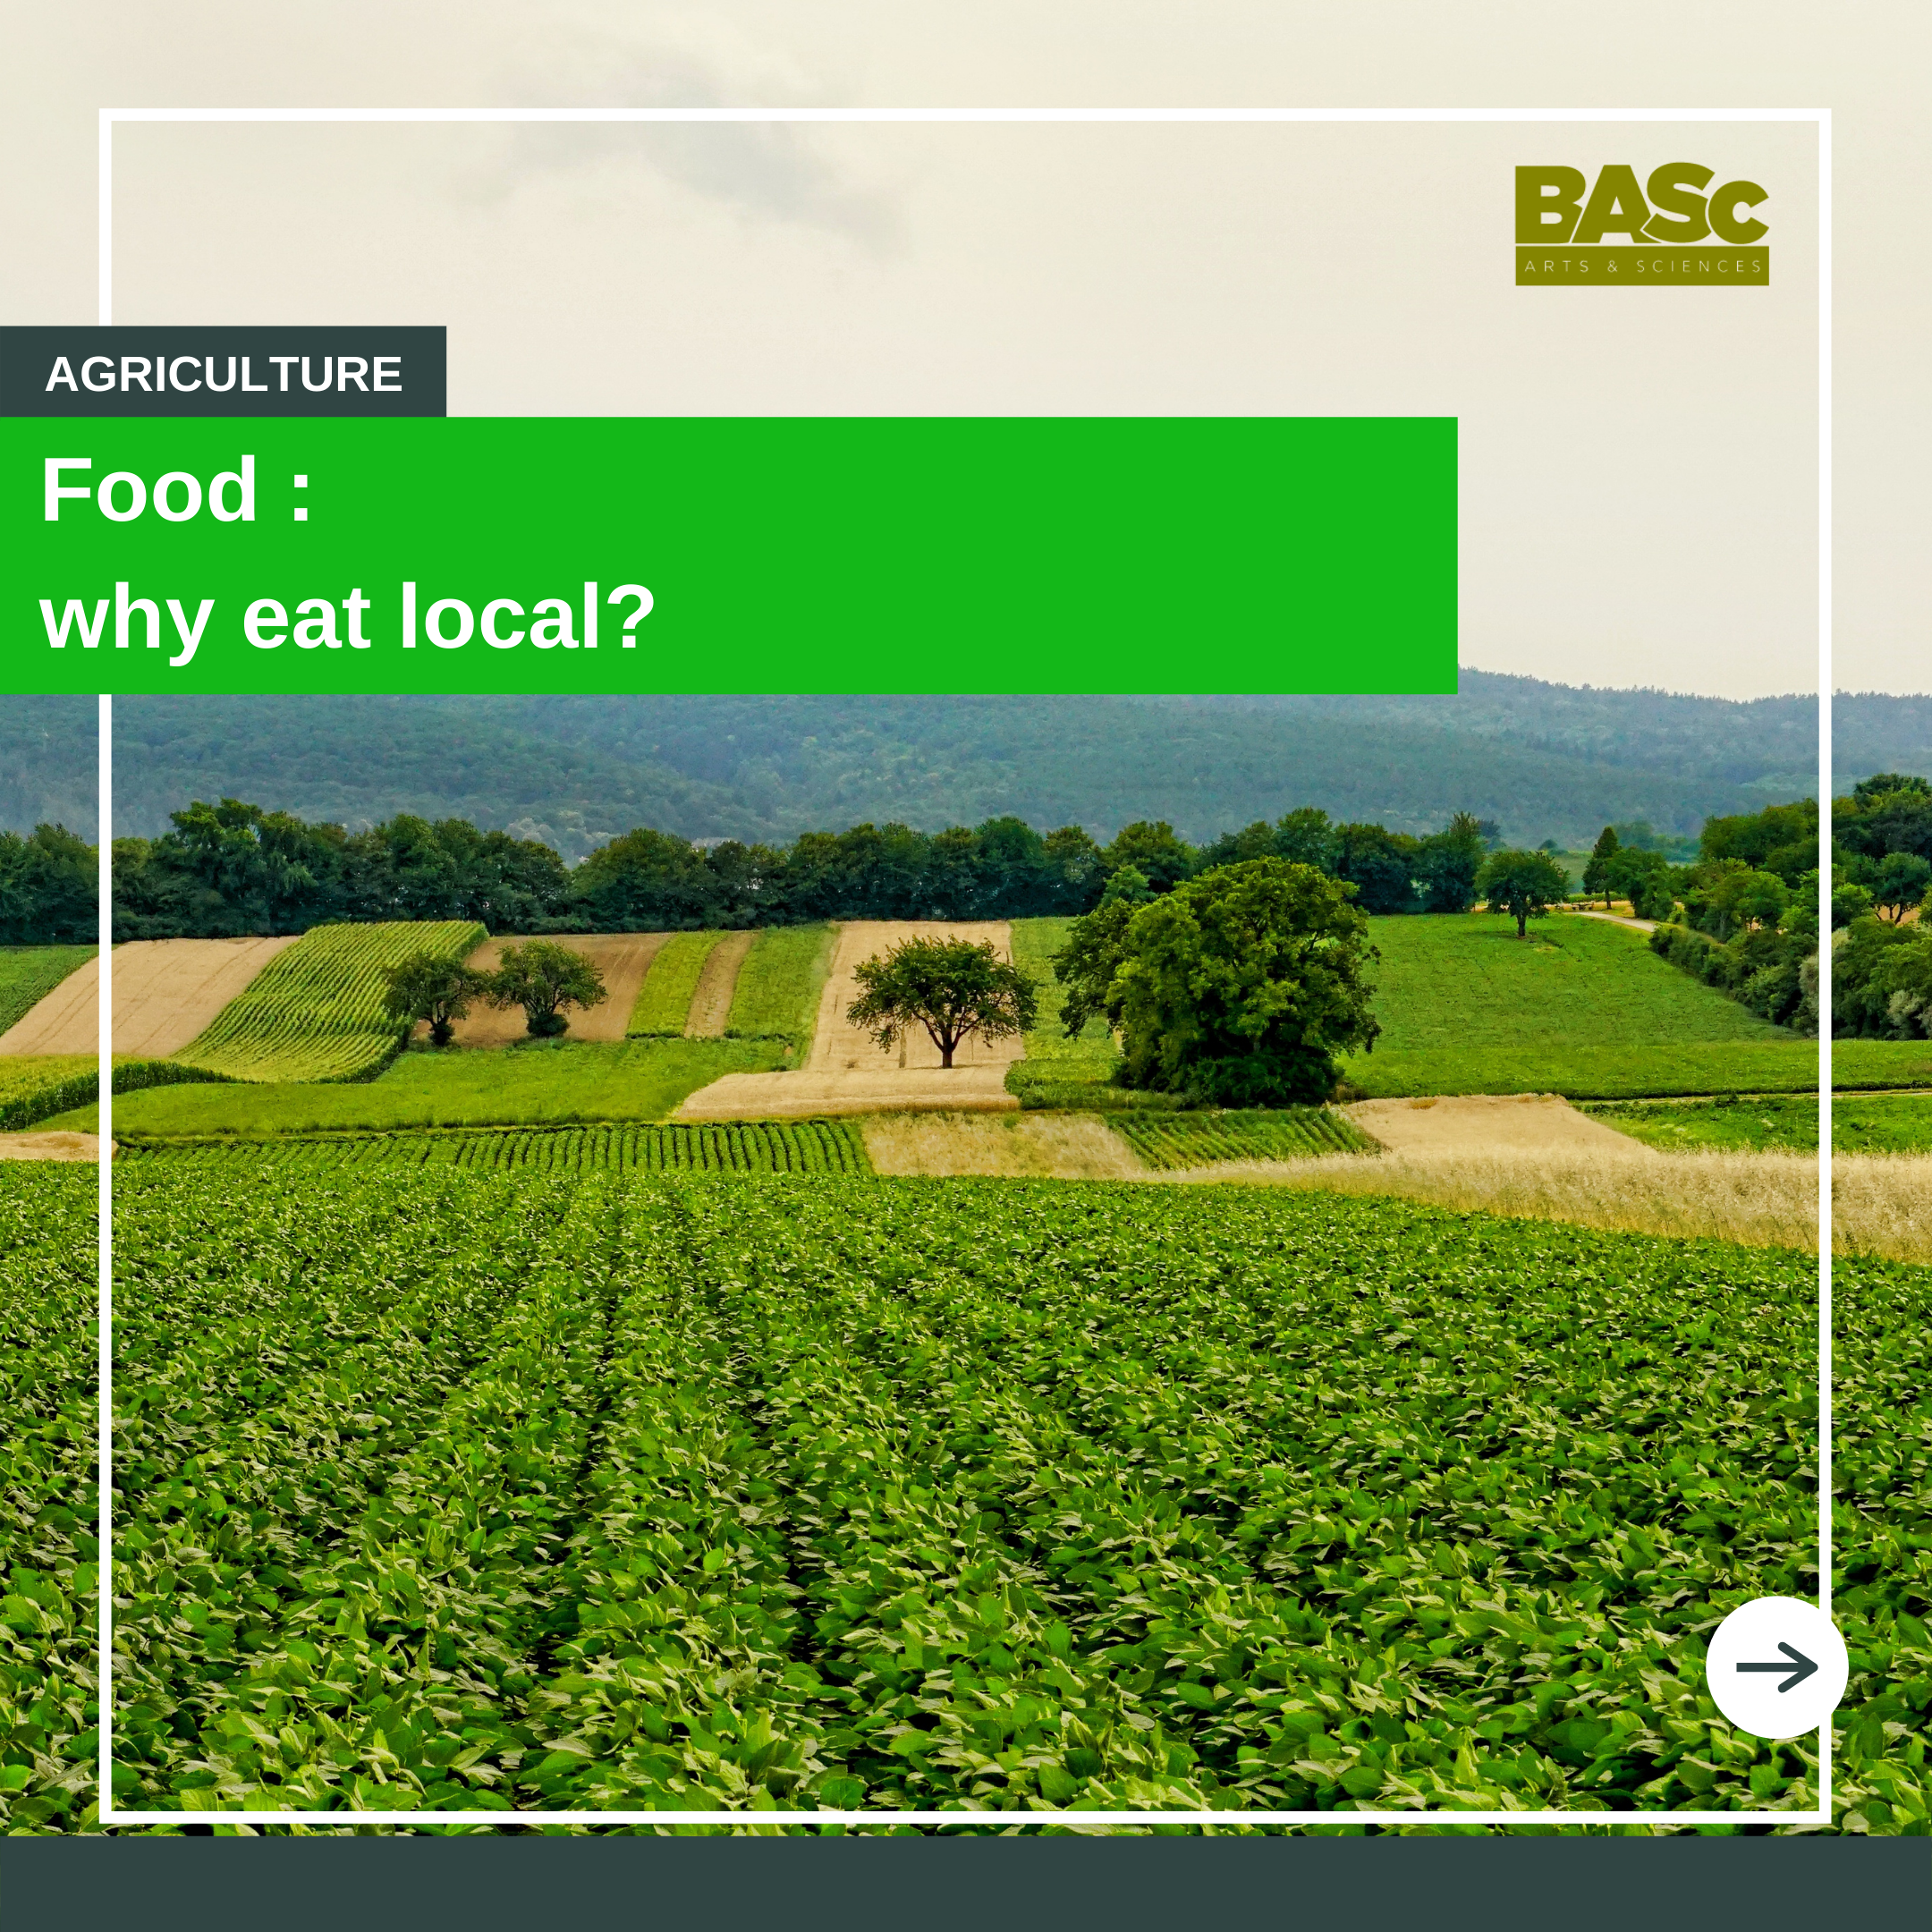 Why eat local first image